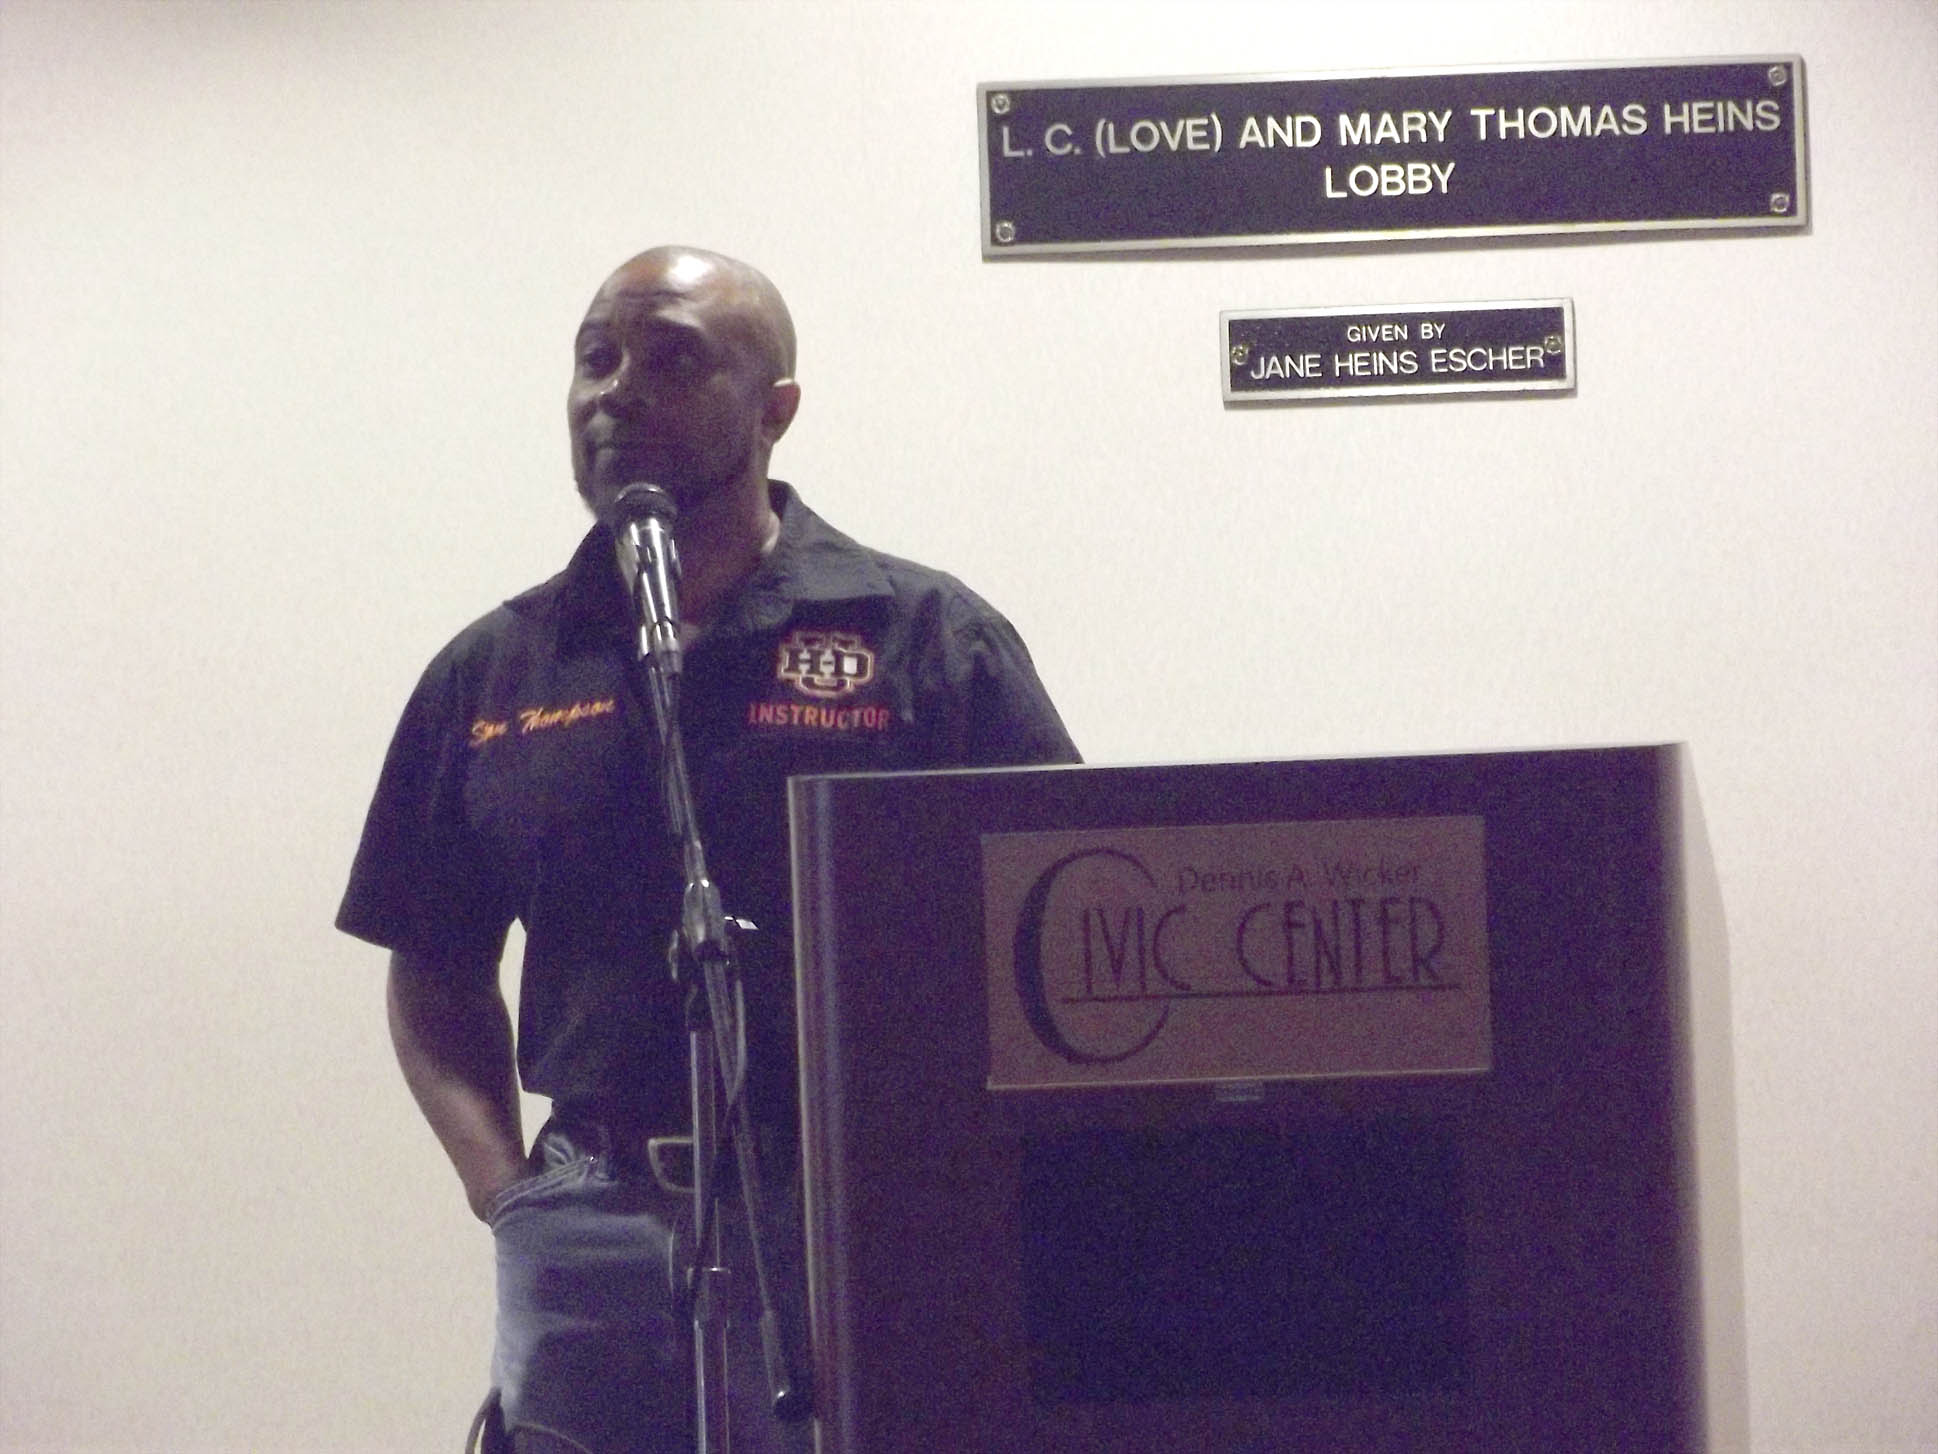 Click to enlarge,  Stanley Thompson, CCCC Motorcycle Mechanics Lead Instructor, was among the speakers in a program to honor veterans on Thursday, Nov. 9, at the Dennis A. Wicker Civic Center.